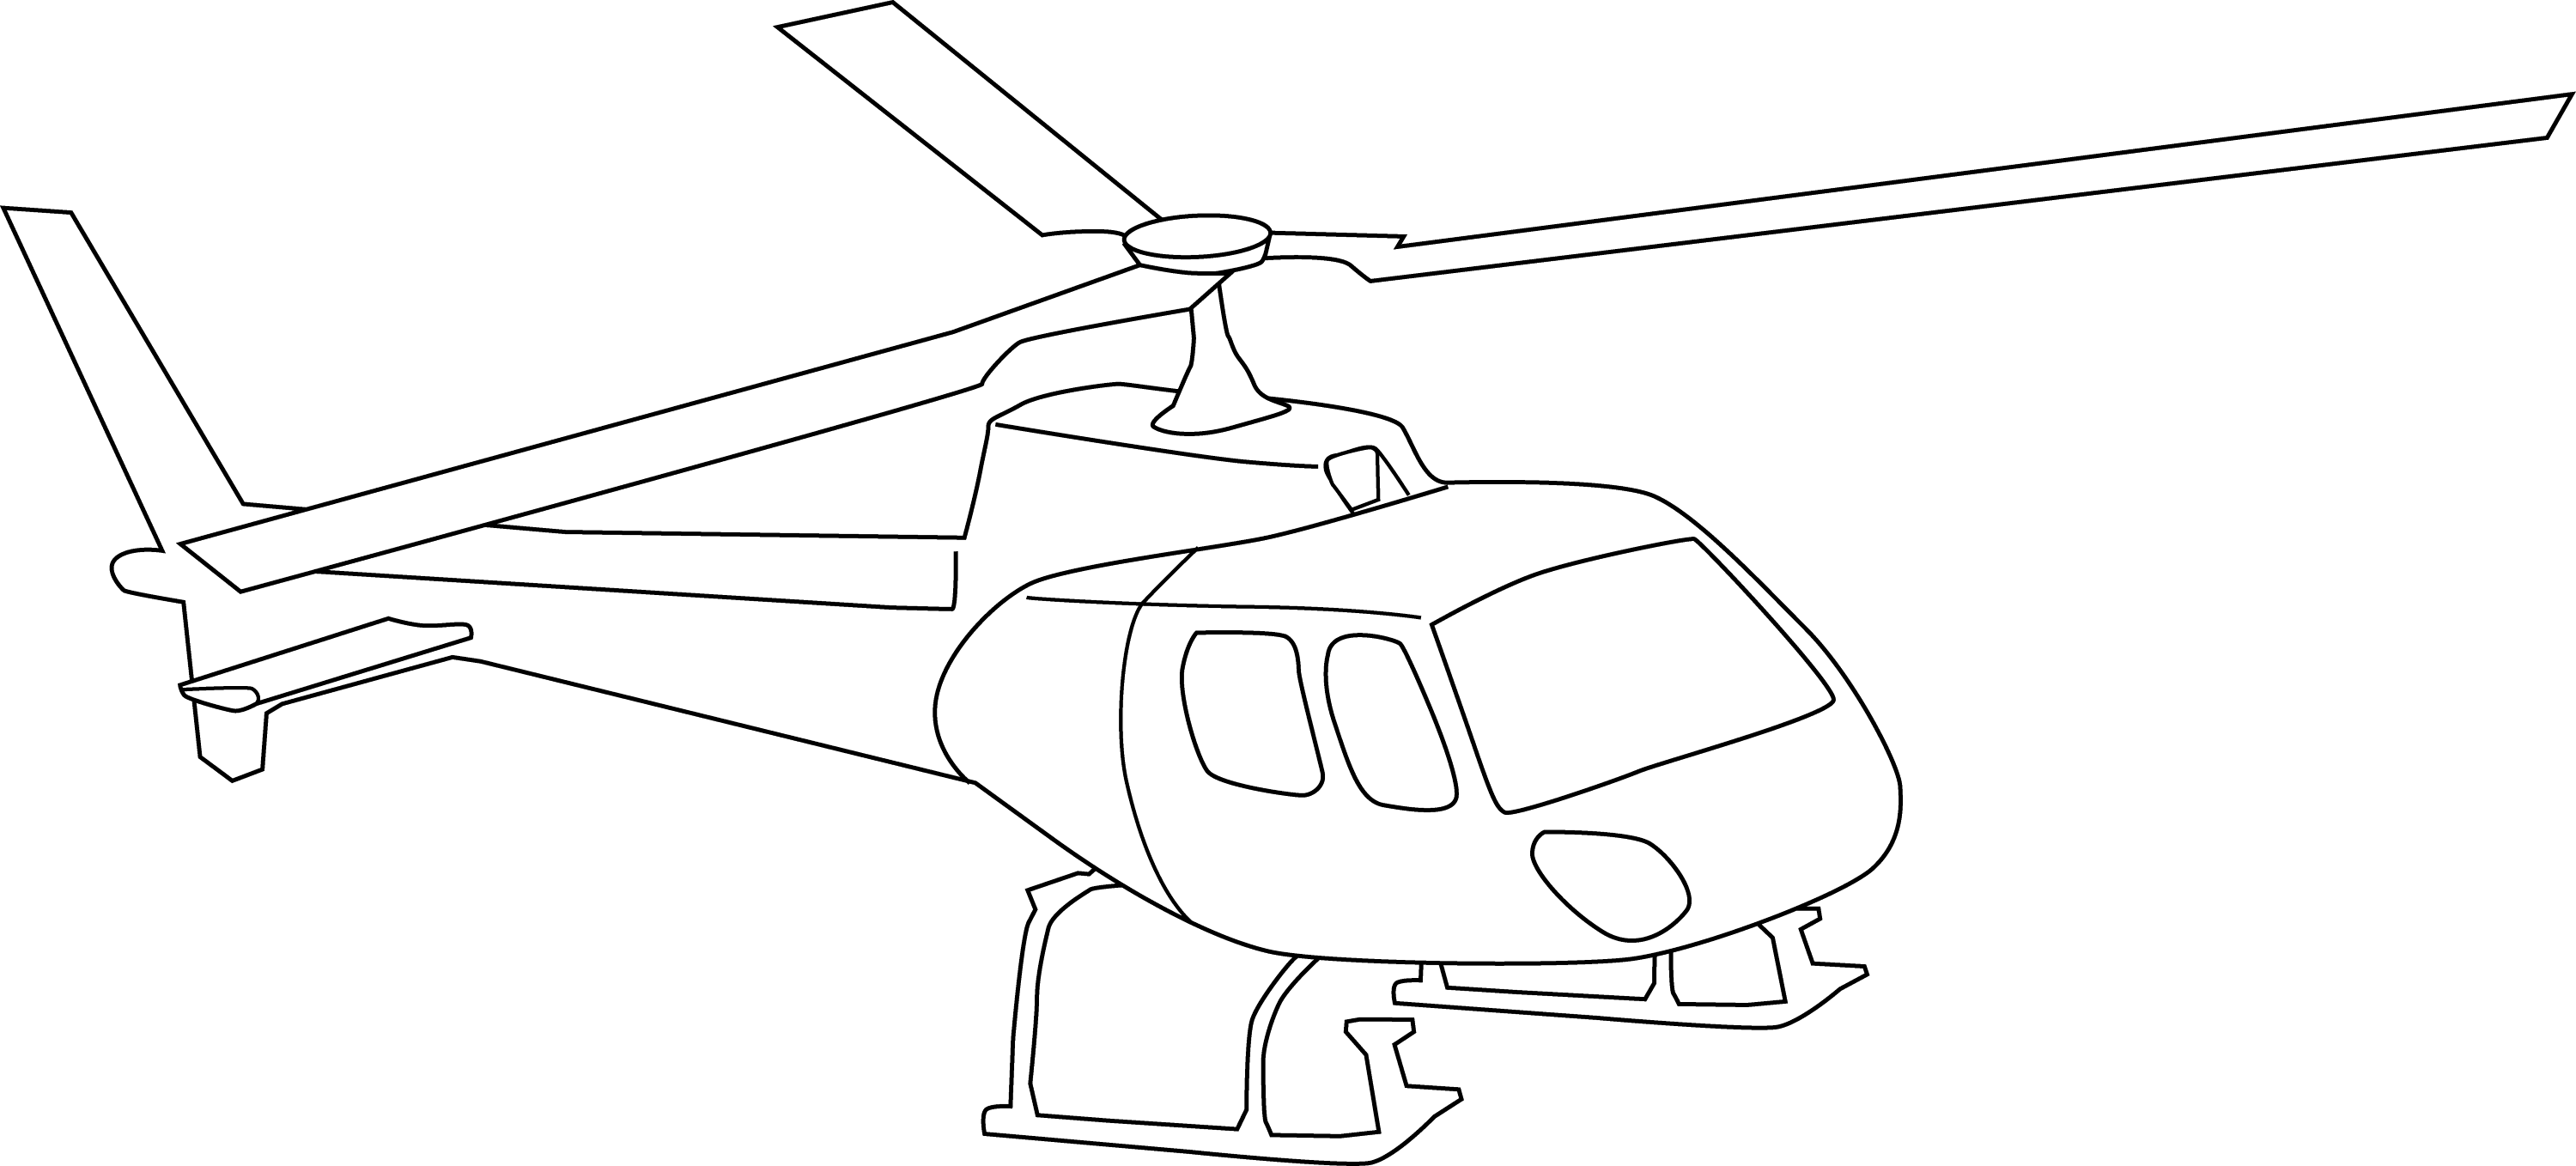 Helicopter Line Art For Coloring